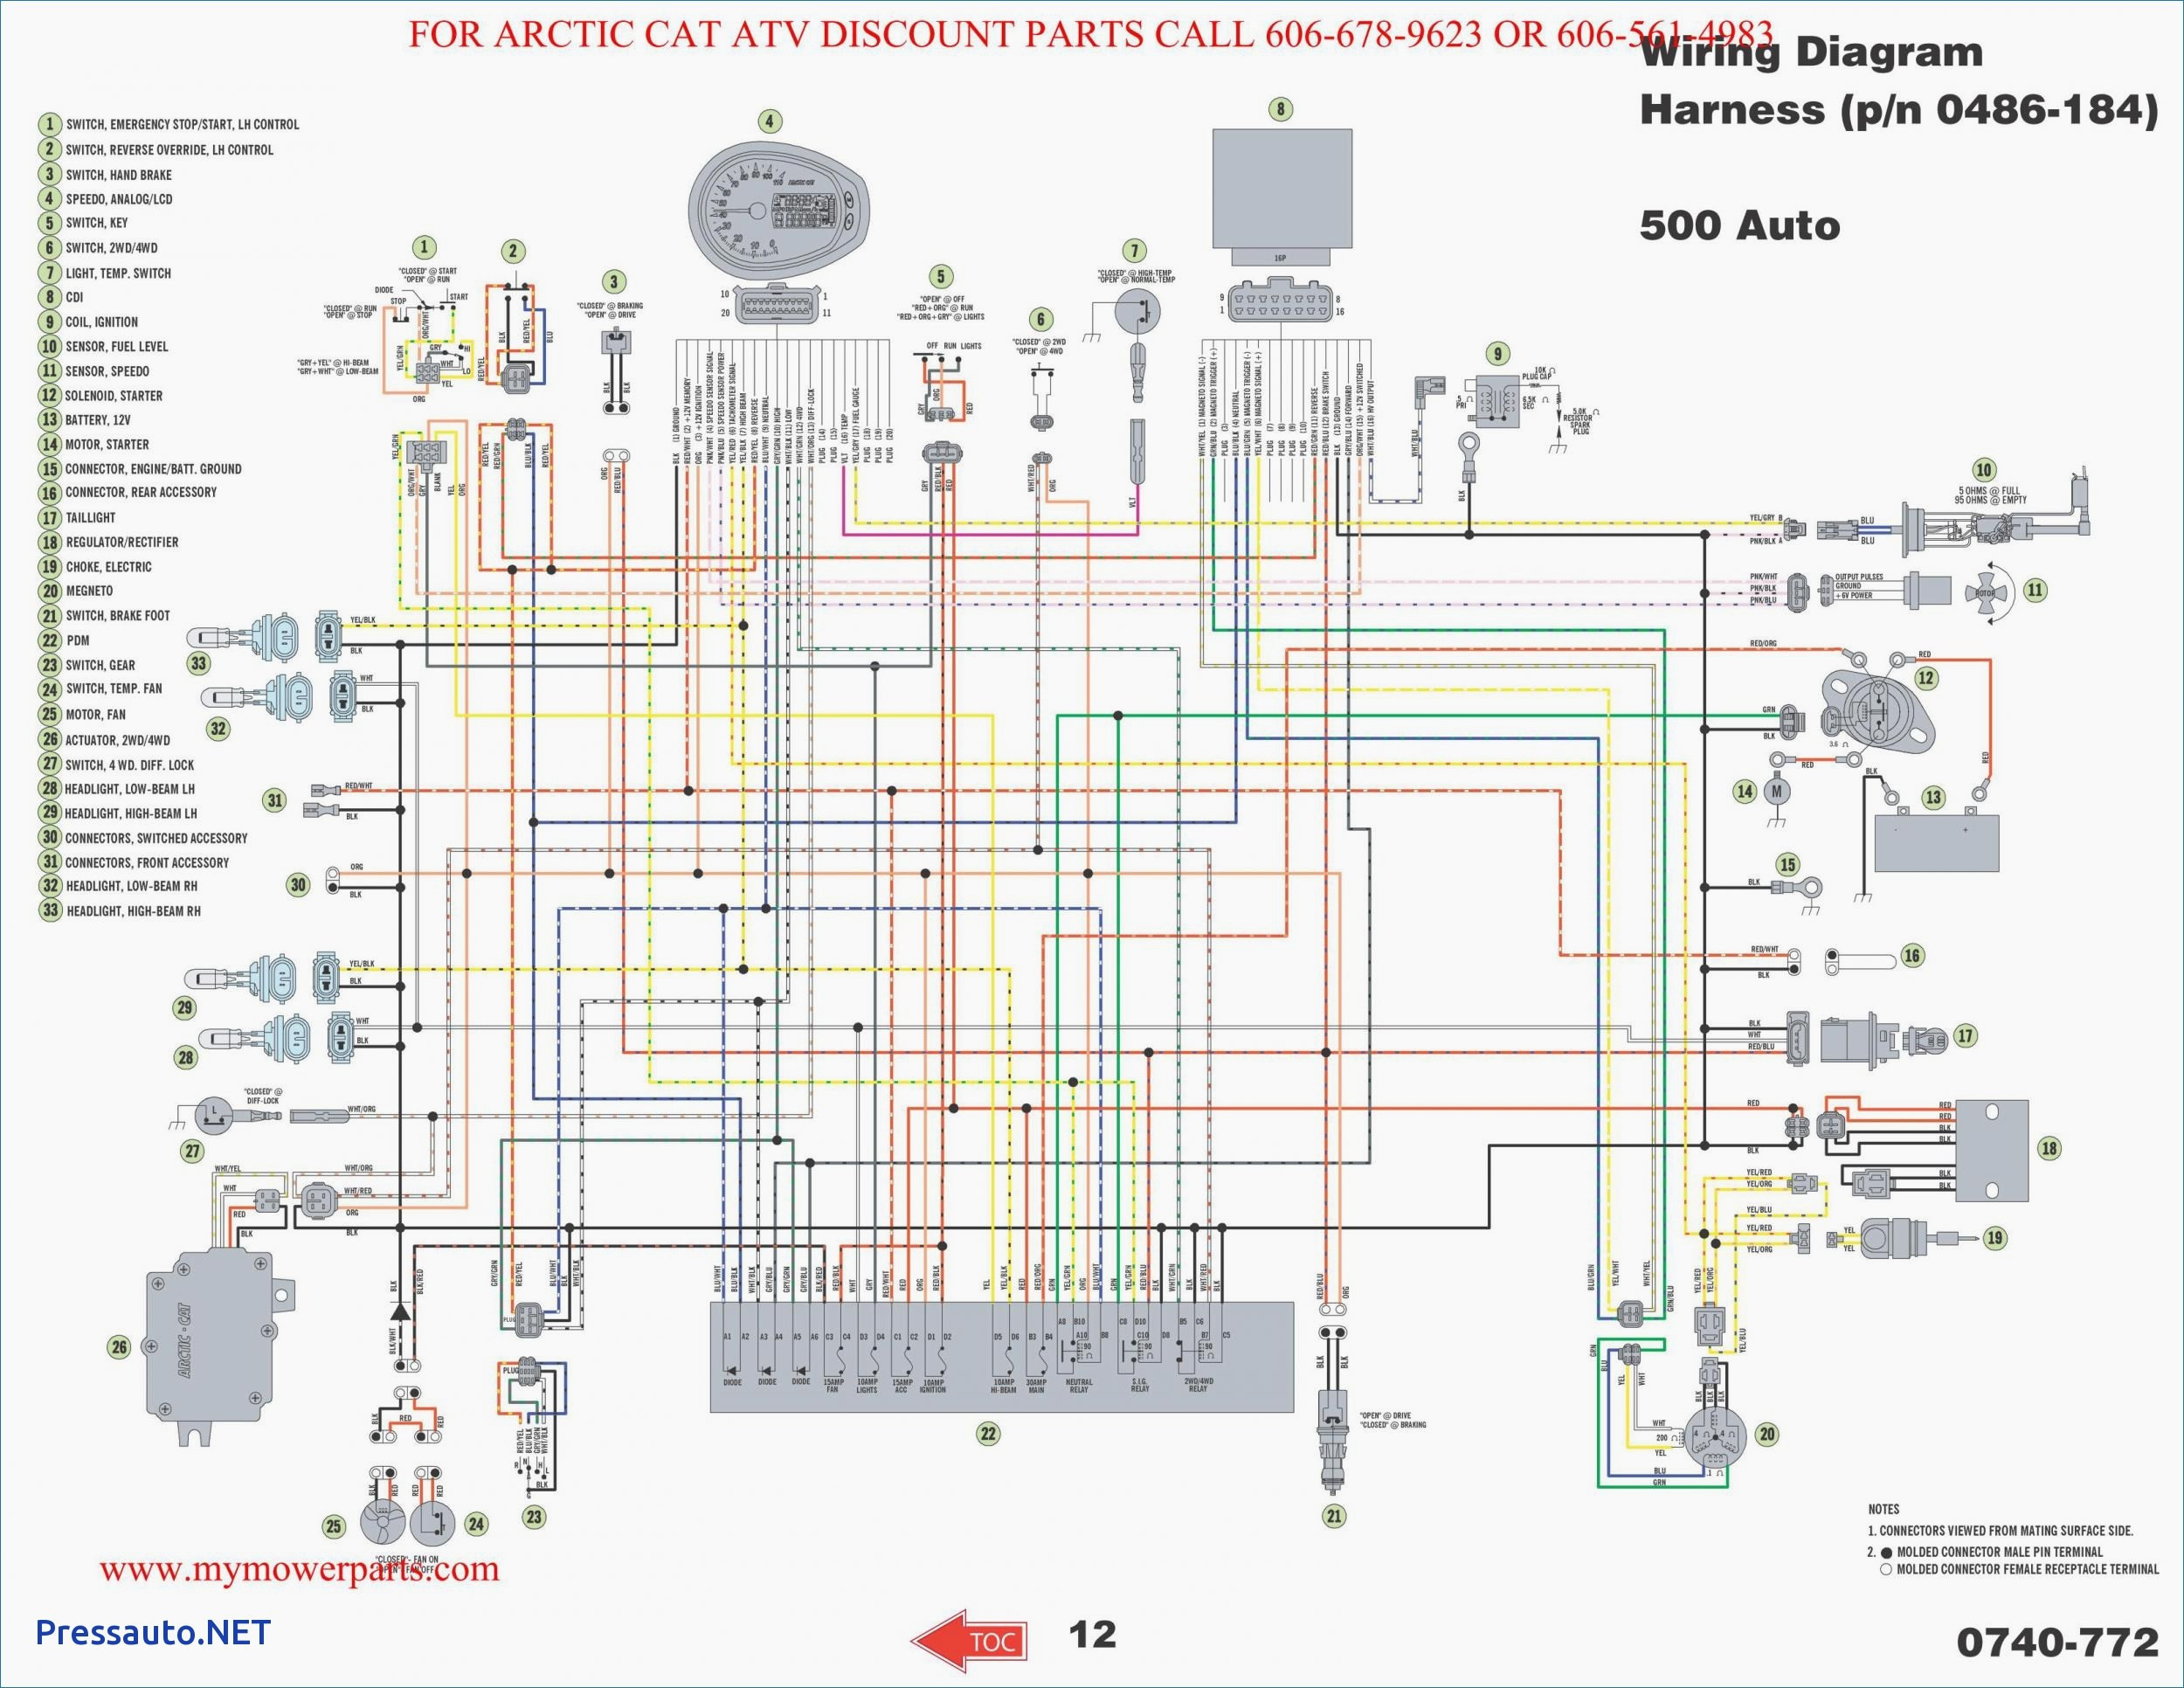 Tremendous Olympian Generator Wiring Diagram 4001E Gallery Wiring Diagram Sample Wiring Digital Resources Llinedefiancerspsorg